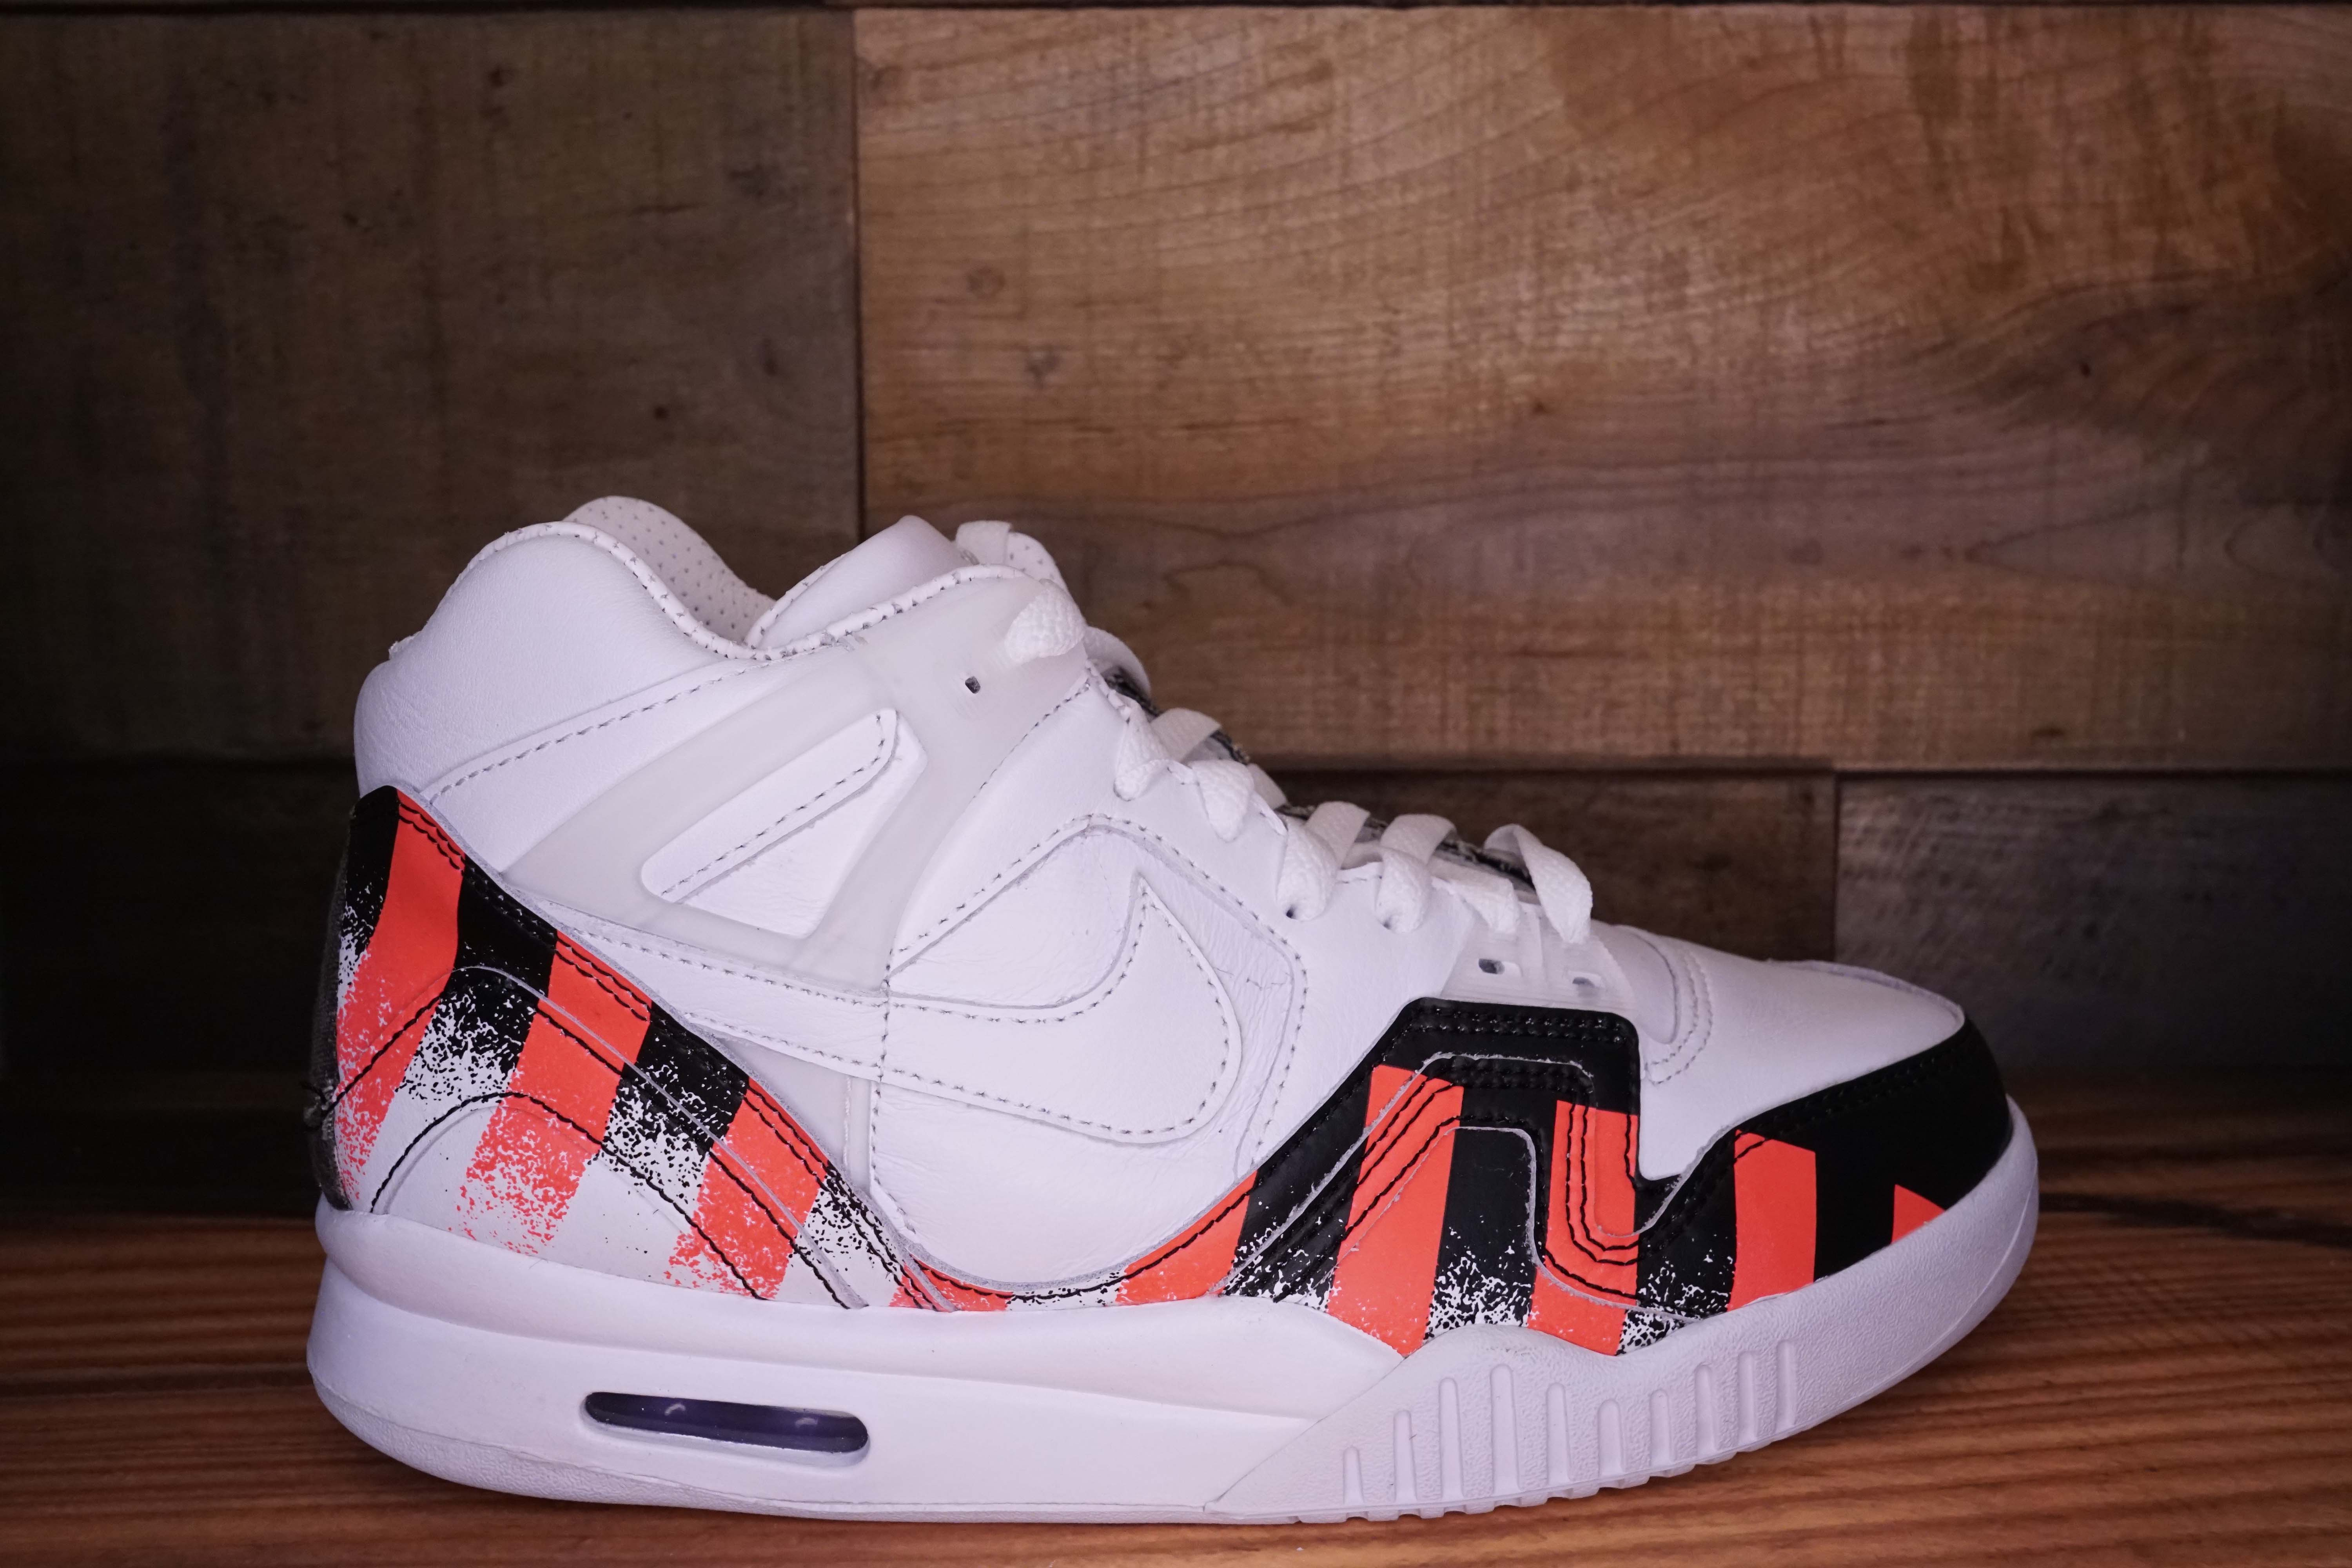 Nike-Air-Tech-Challenge-2-FRENCH-OPEN-Size-10.5-New-with-Original-Box_2087A.jpg